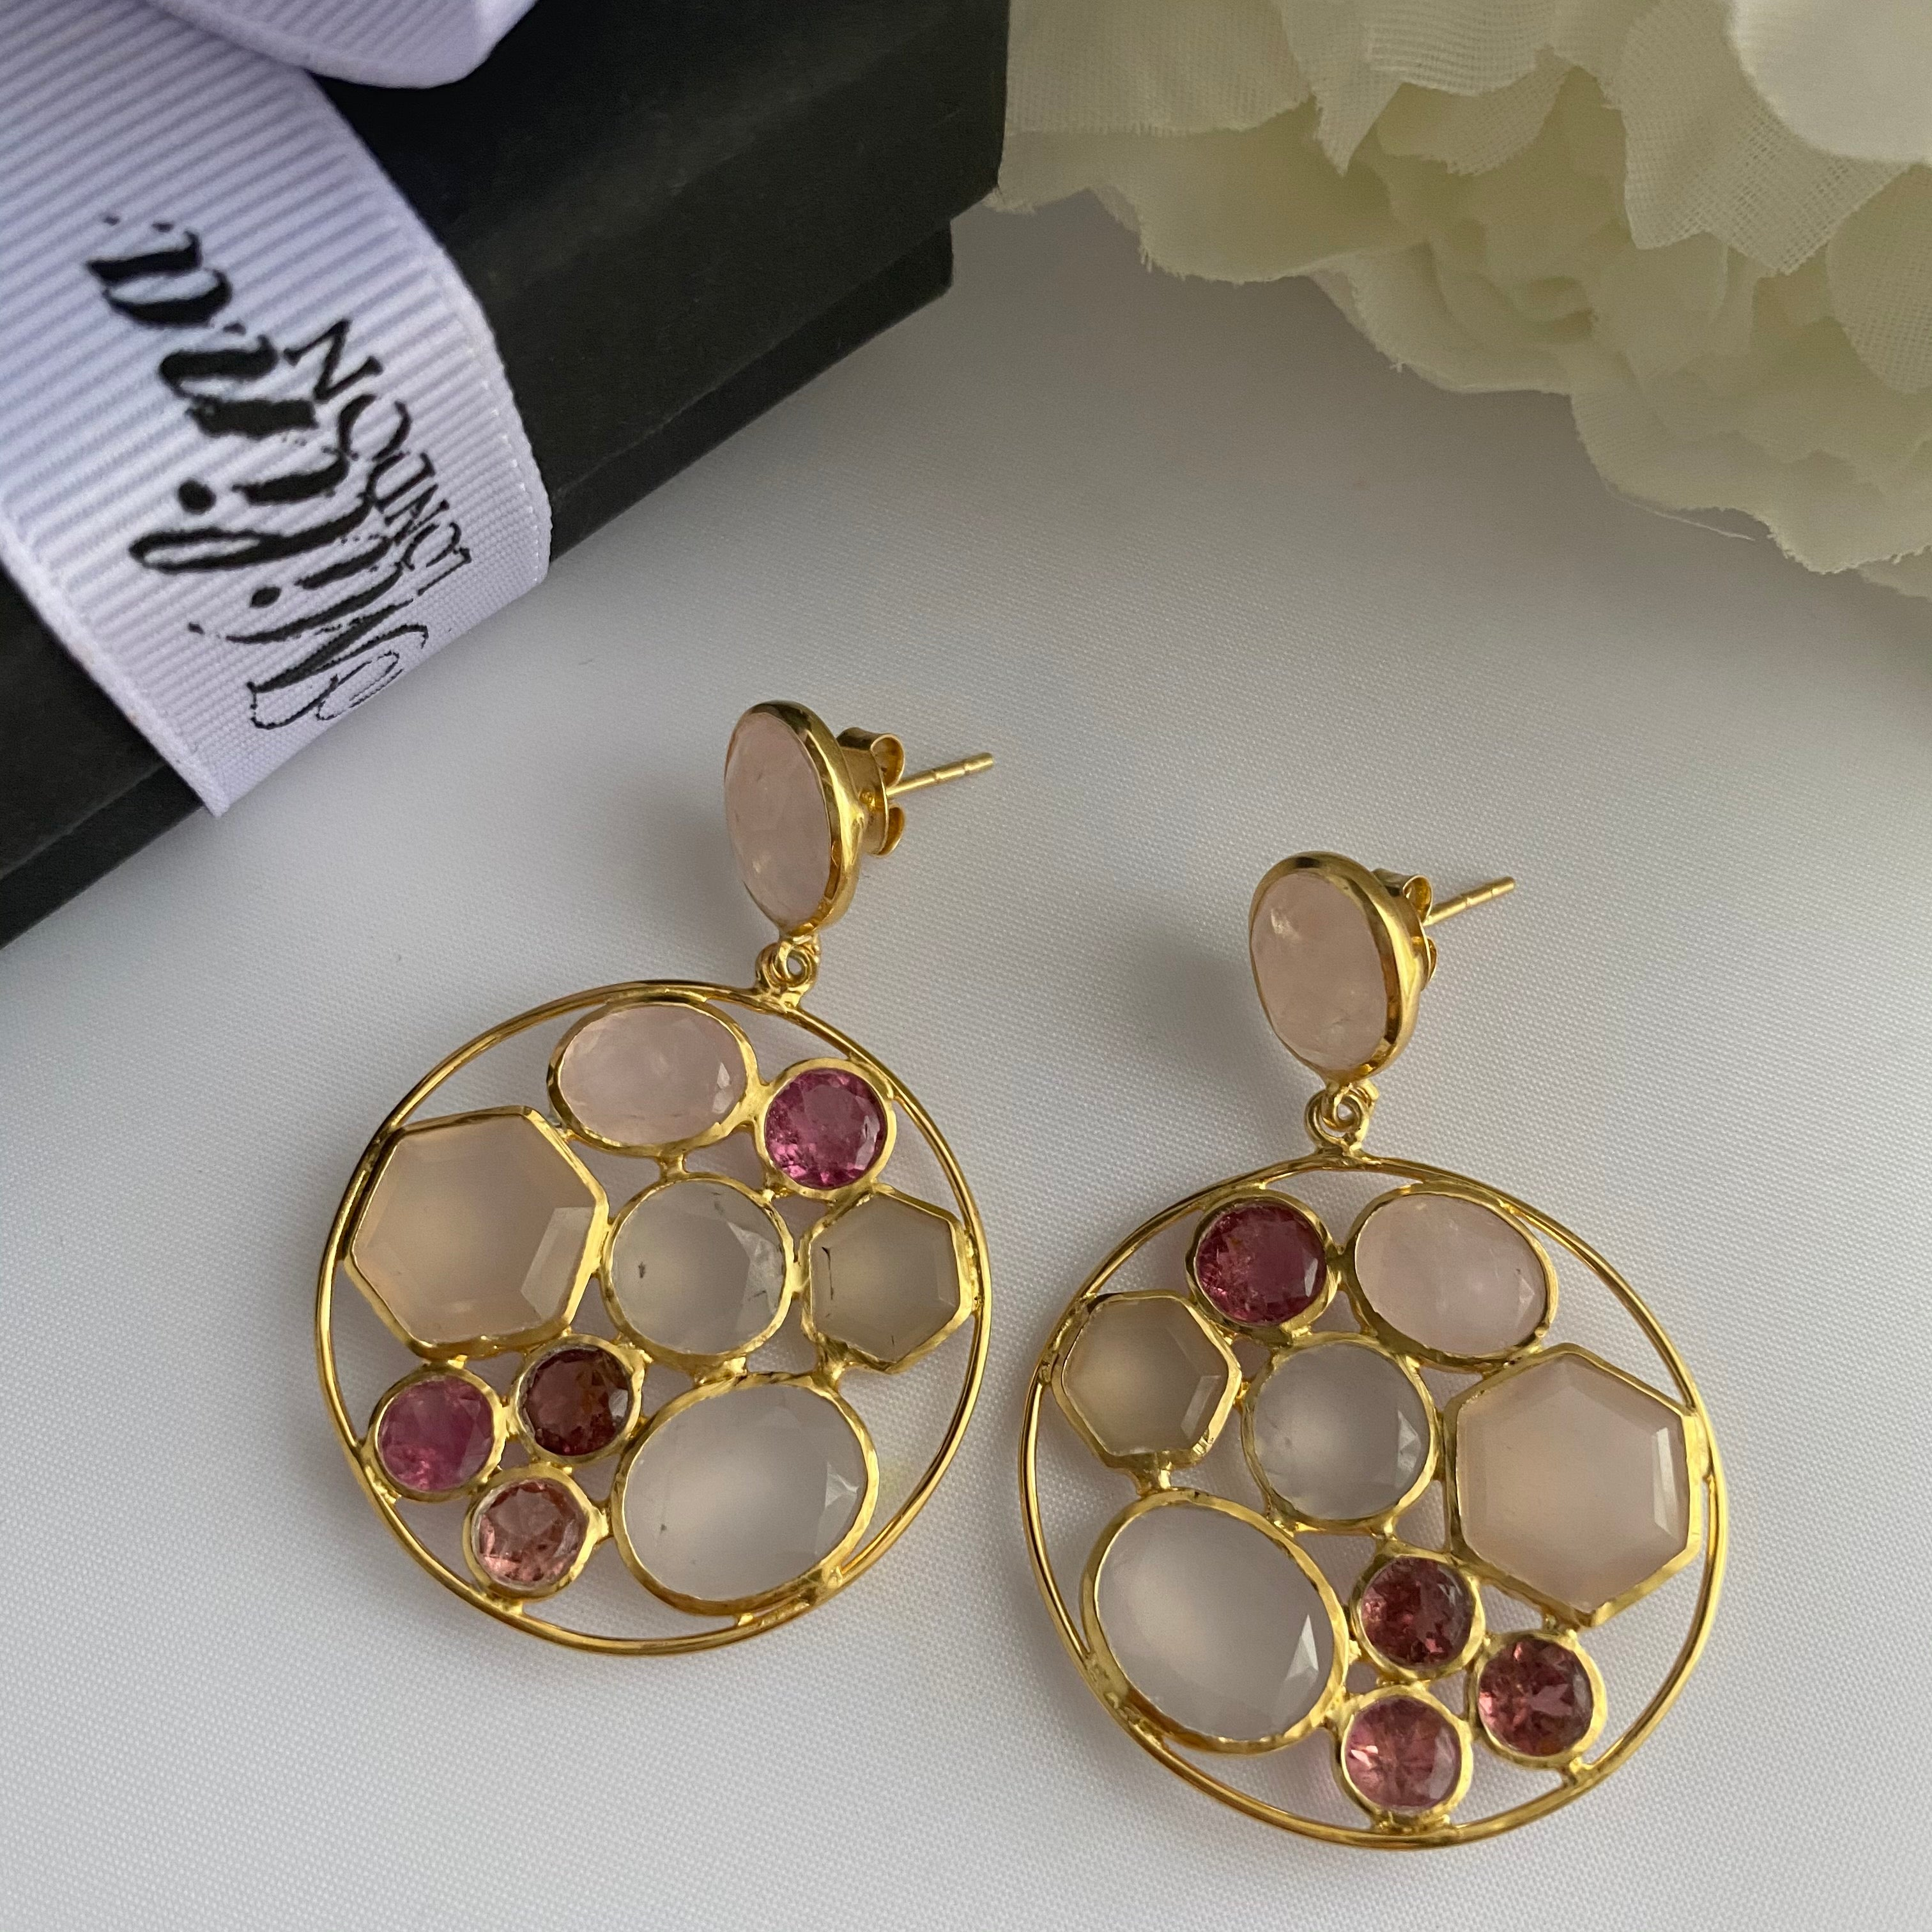 Long Gemstone Earrings with a Round Disc Drop with Stones in Gold Plated Sterling Silver - Rose Quartz and Pink Chalcedony